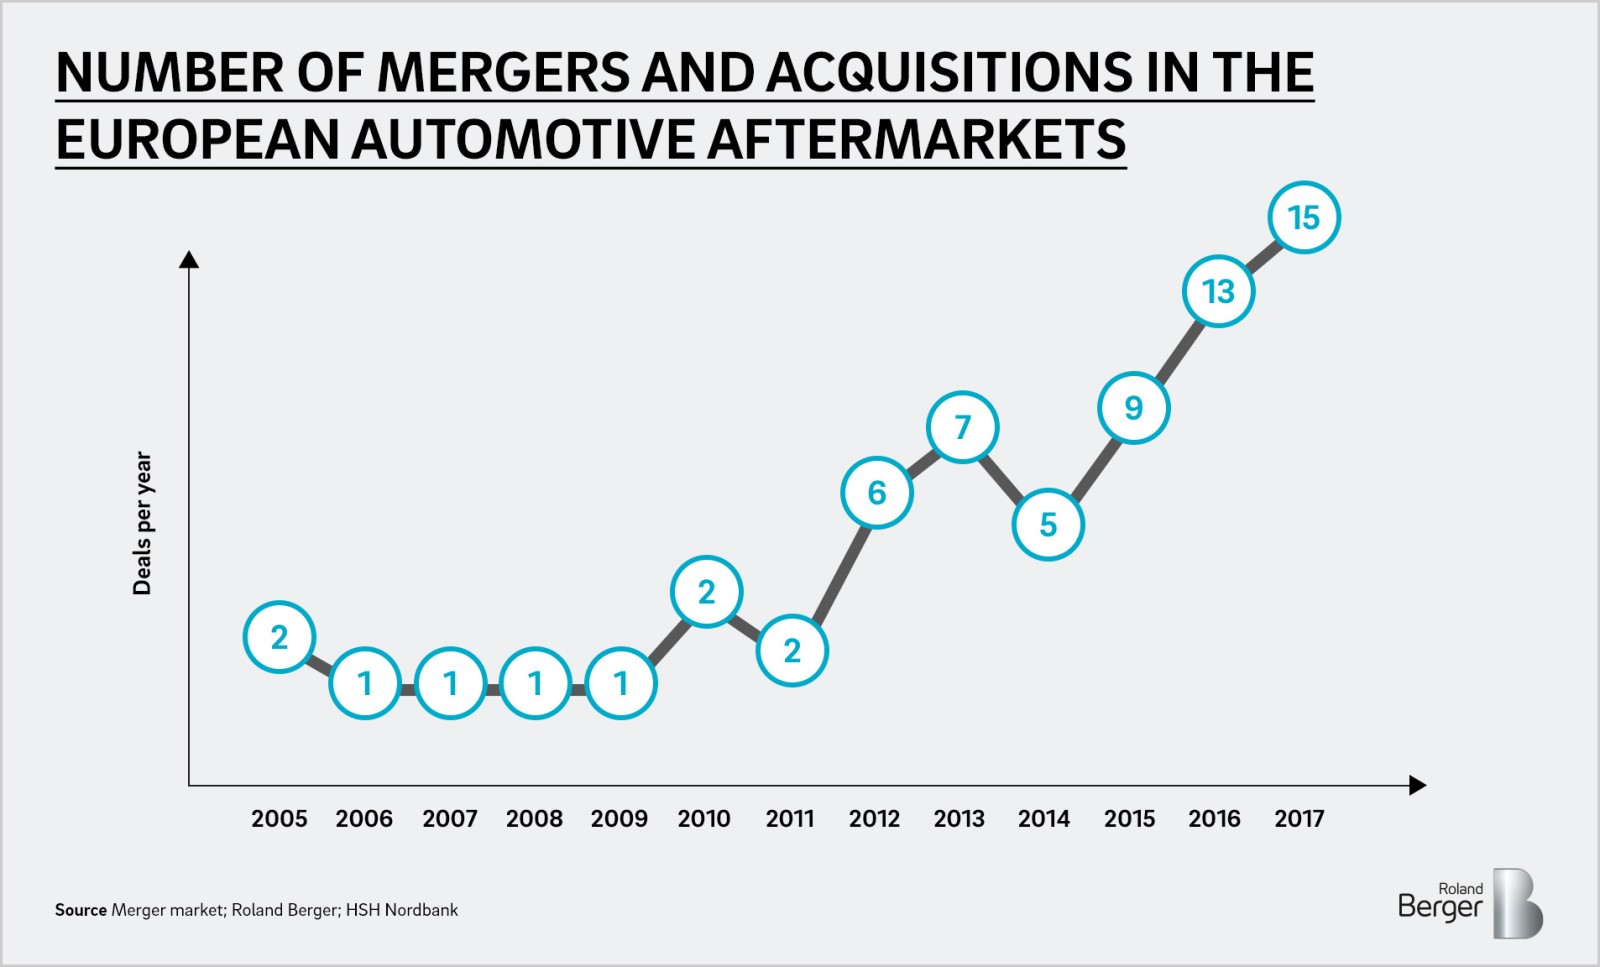 Consolidation in the European automotive aftermarket — Roland Berger